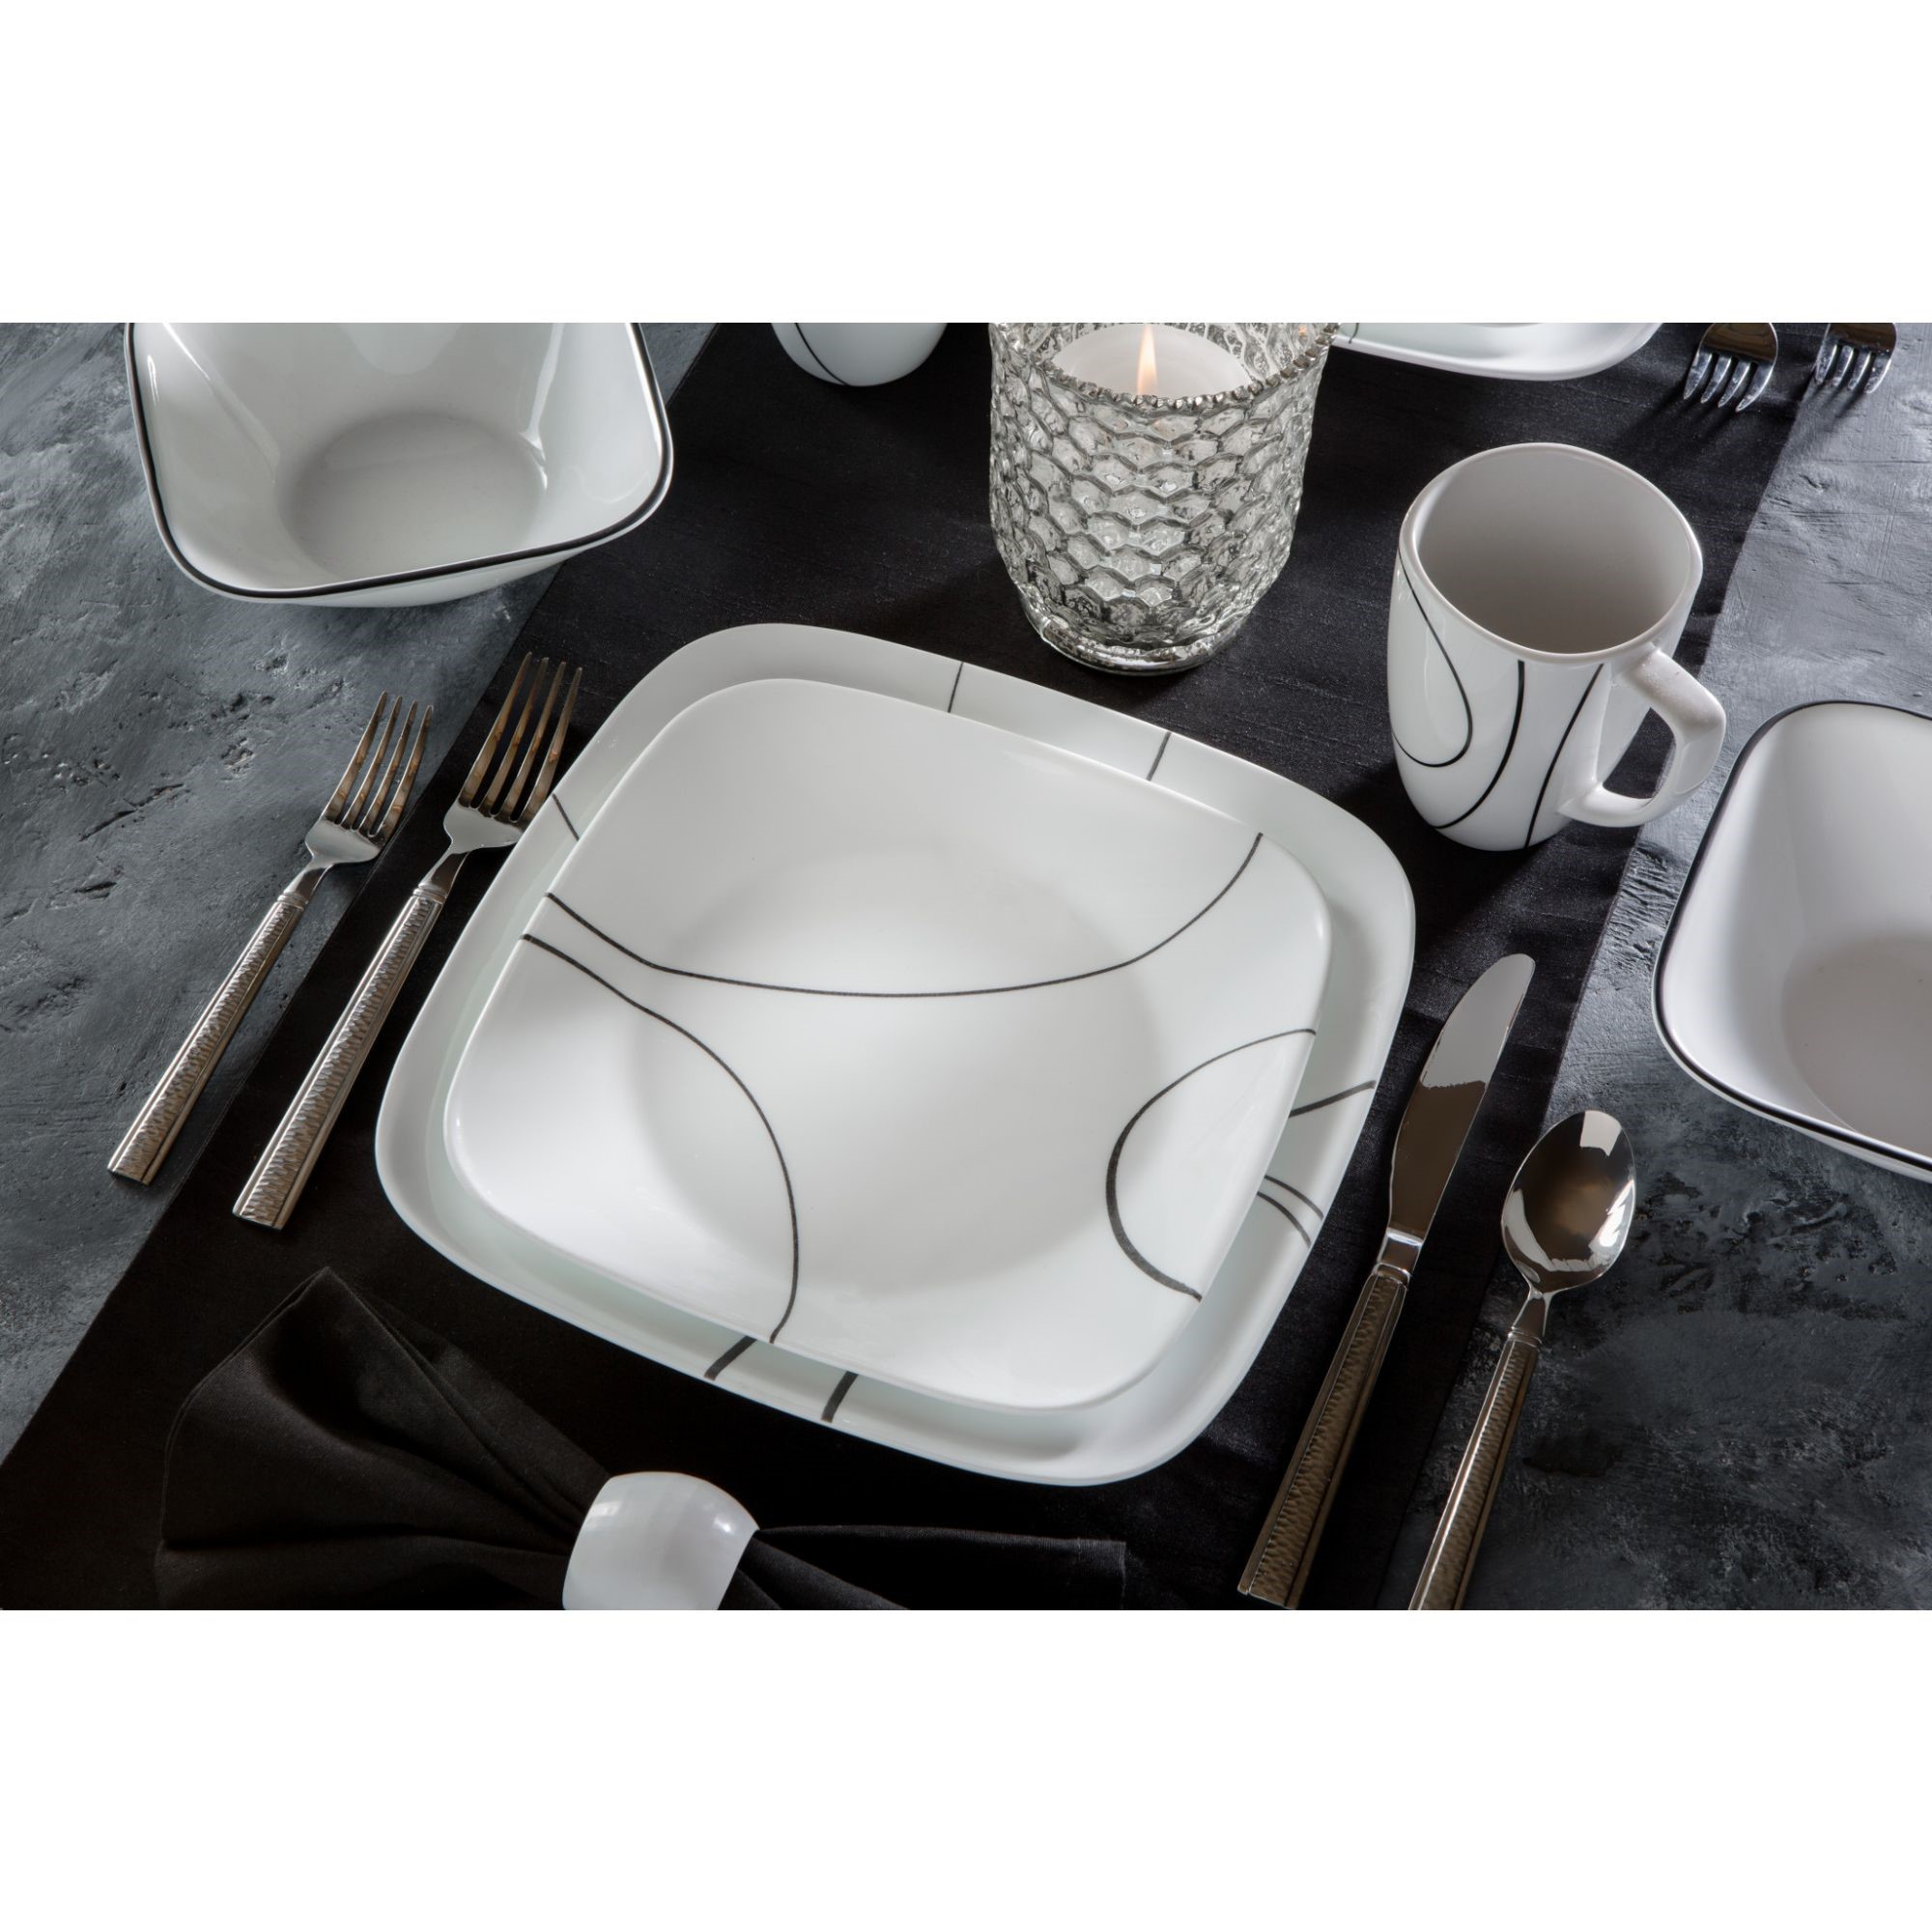 Corelle Square Simple Lines 16-Piece Dinnerware Set  sc 1 st  Walmart & Corelle Square Simple Lines 16-Piece Dinnerware Set - Walmart.com